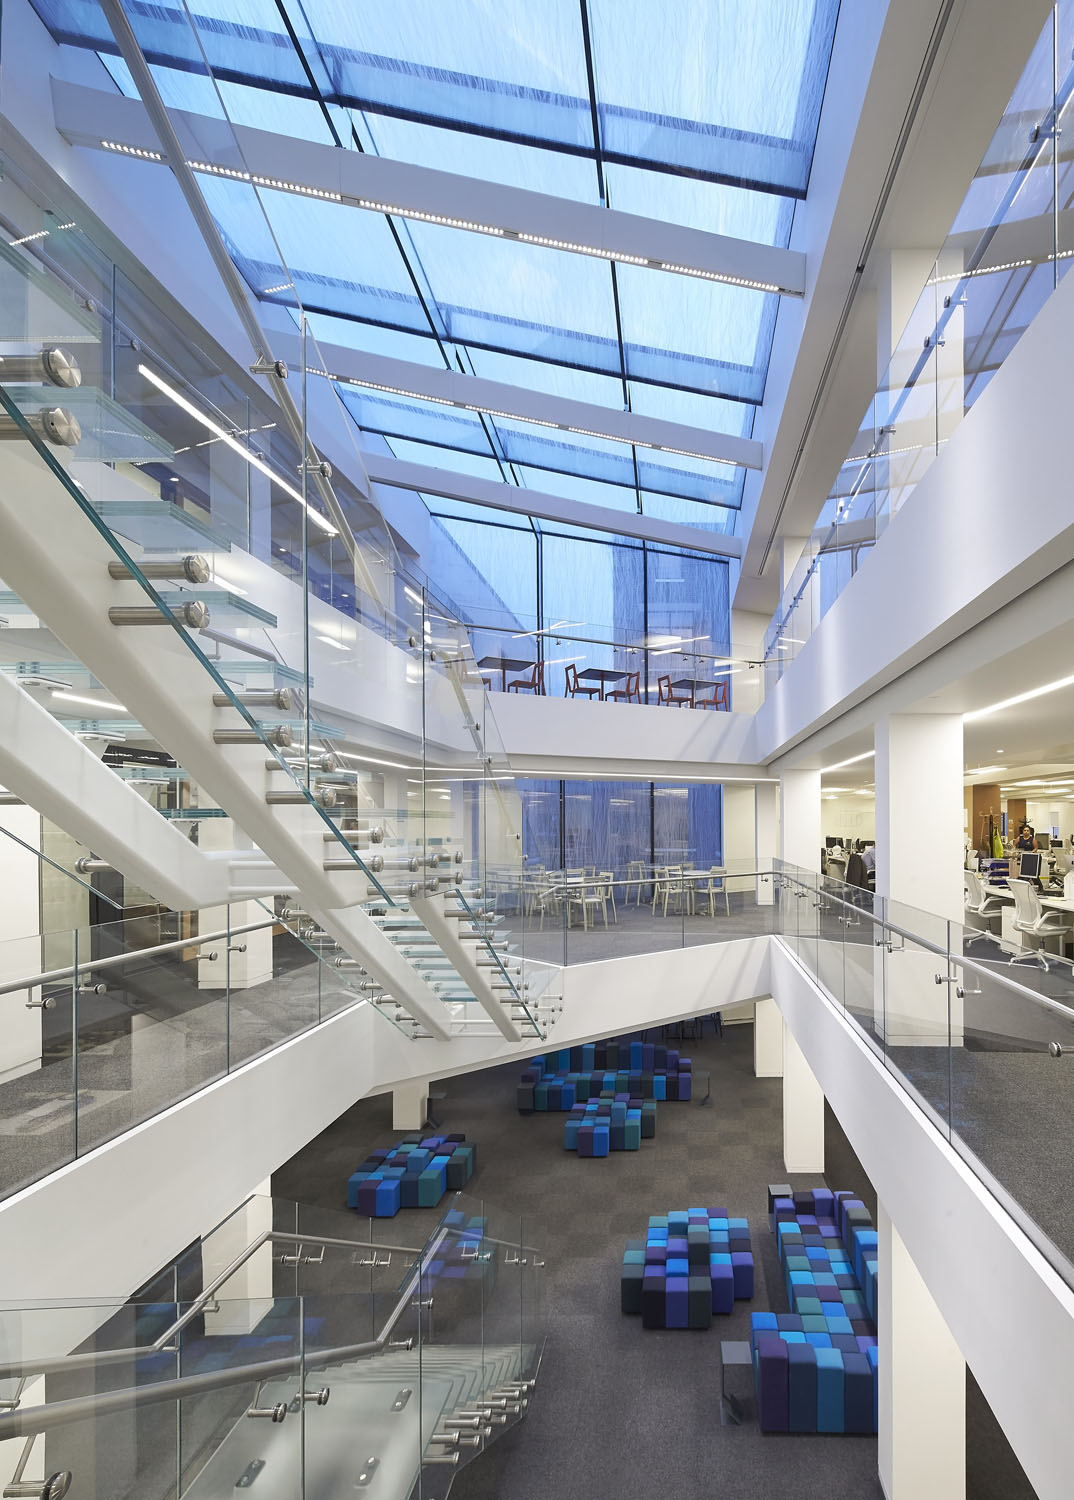 Atrium interior - 82 Baker Street by Marks Barfield Architects